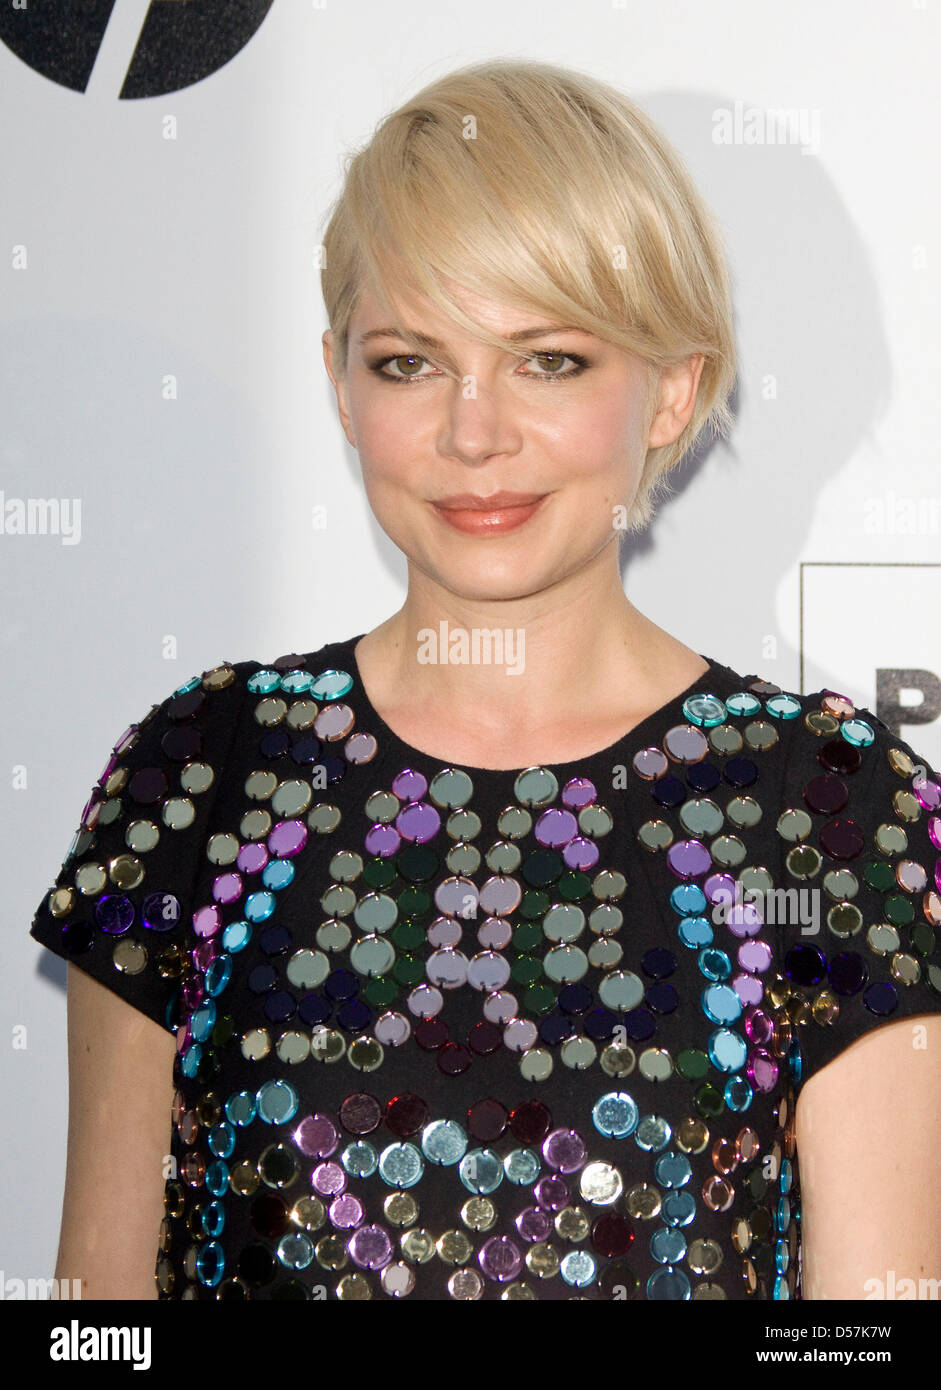 16c09deb132 US American actress Michelle Williams attends the amfAR Cinema Against Aids  Gala within the scope of the 63rd Cannes Film Festival 2010 at the Hotel Du  Cap ...